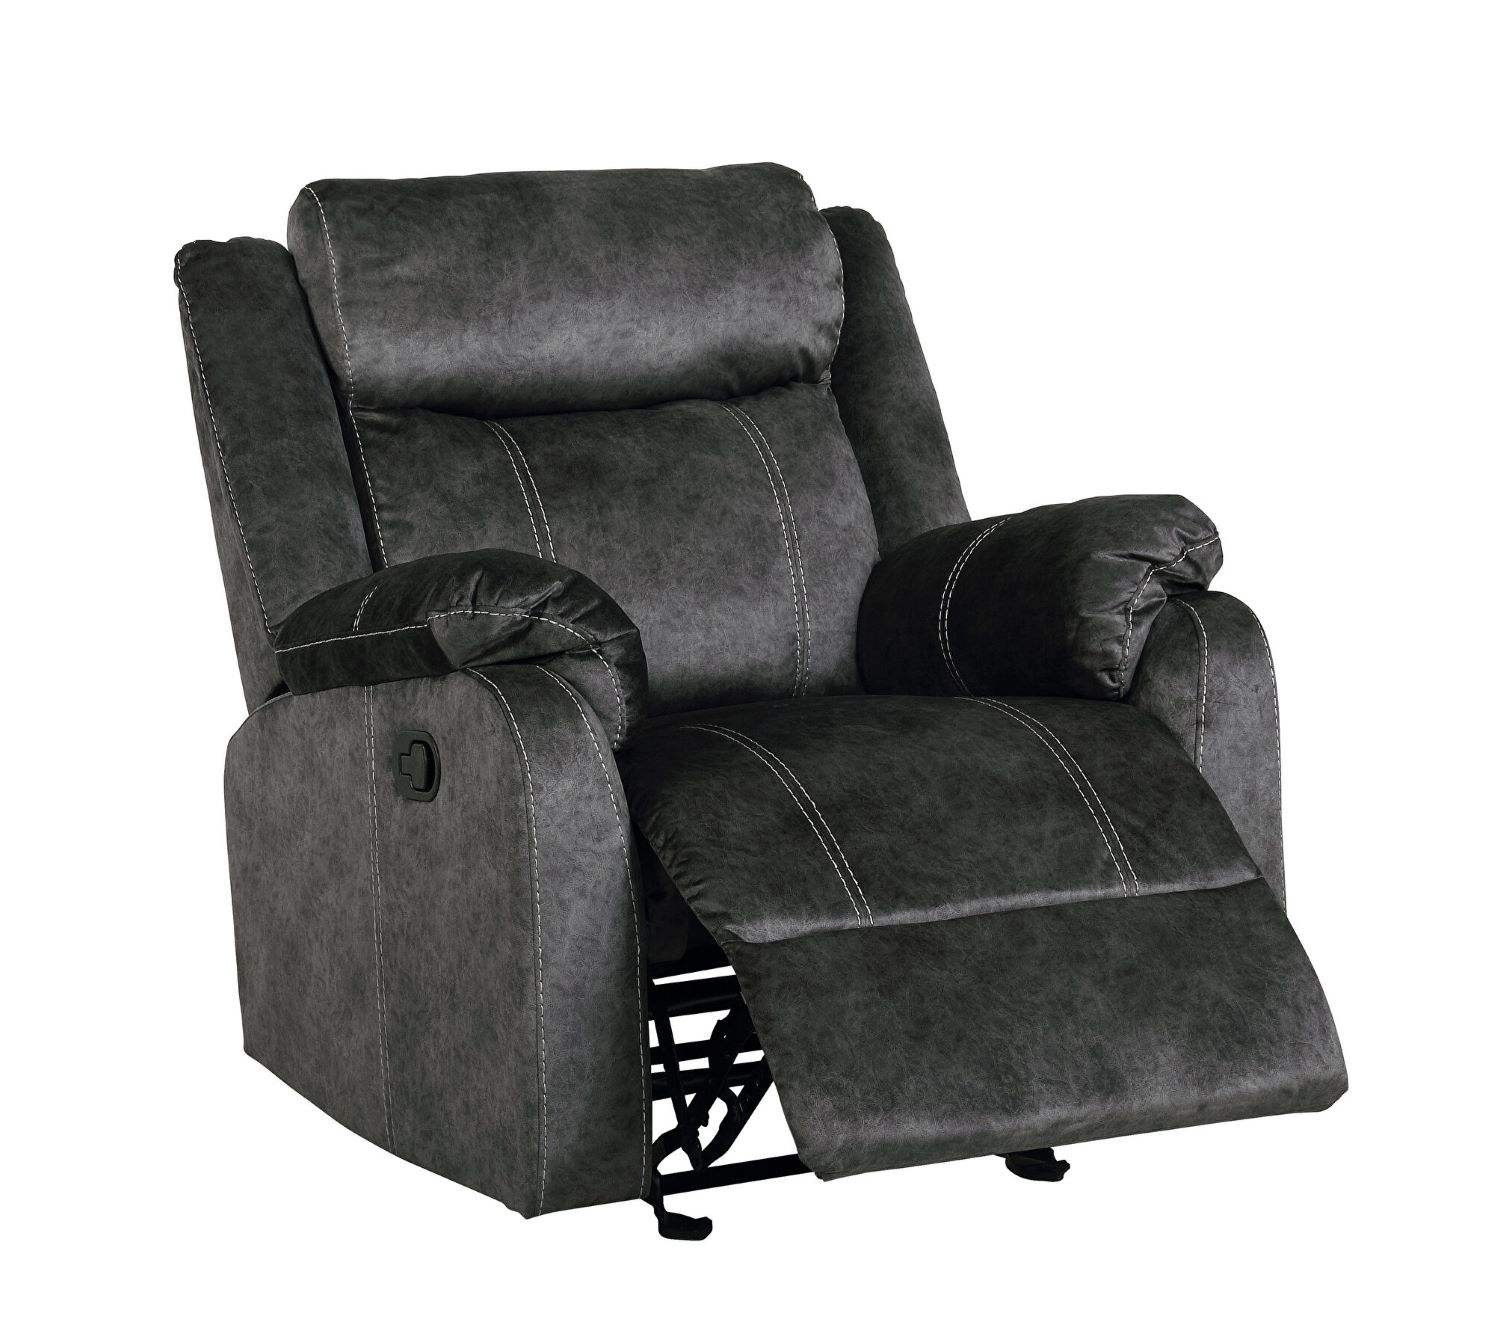 Modern Domino coffee printed microfiber reclining chair for living room